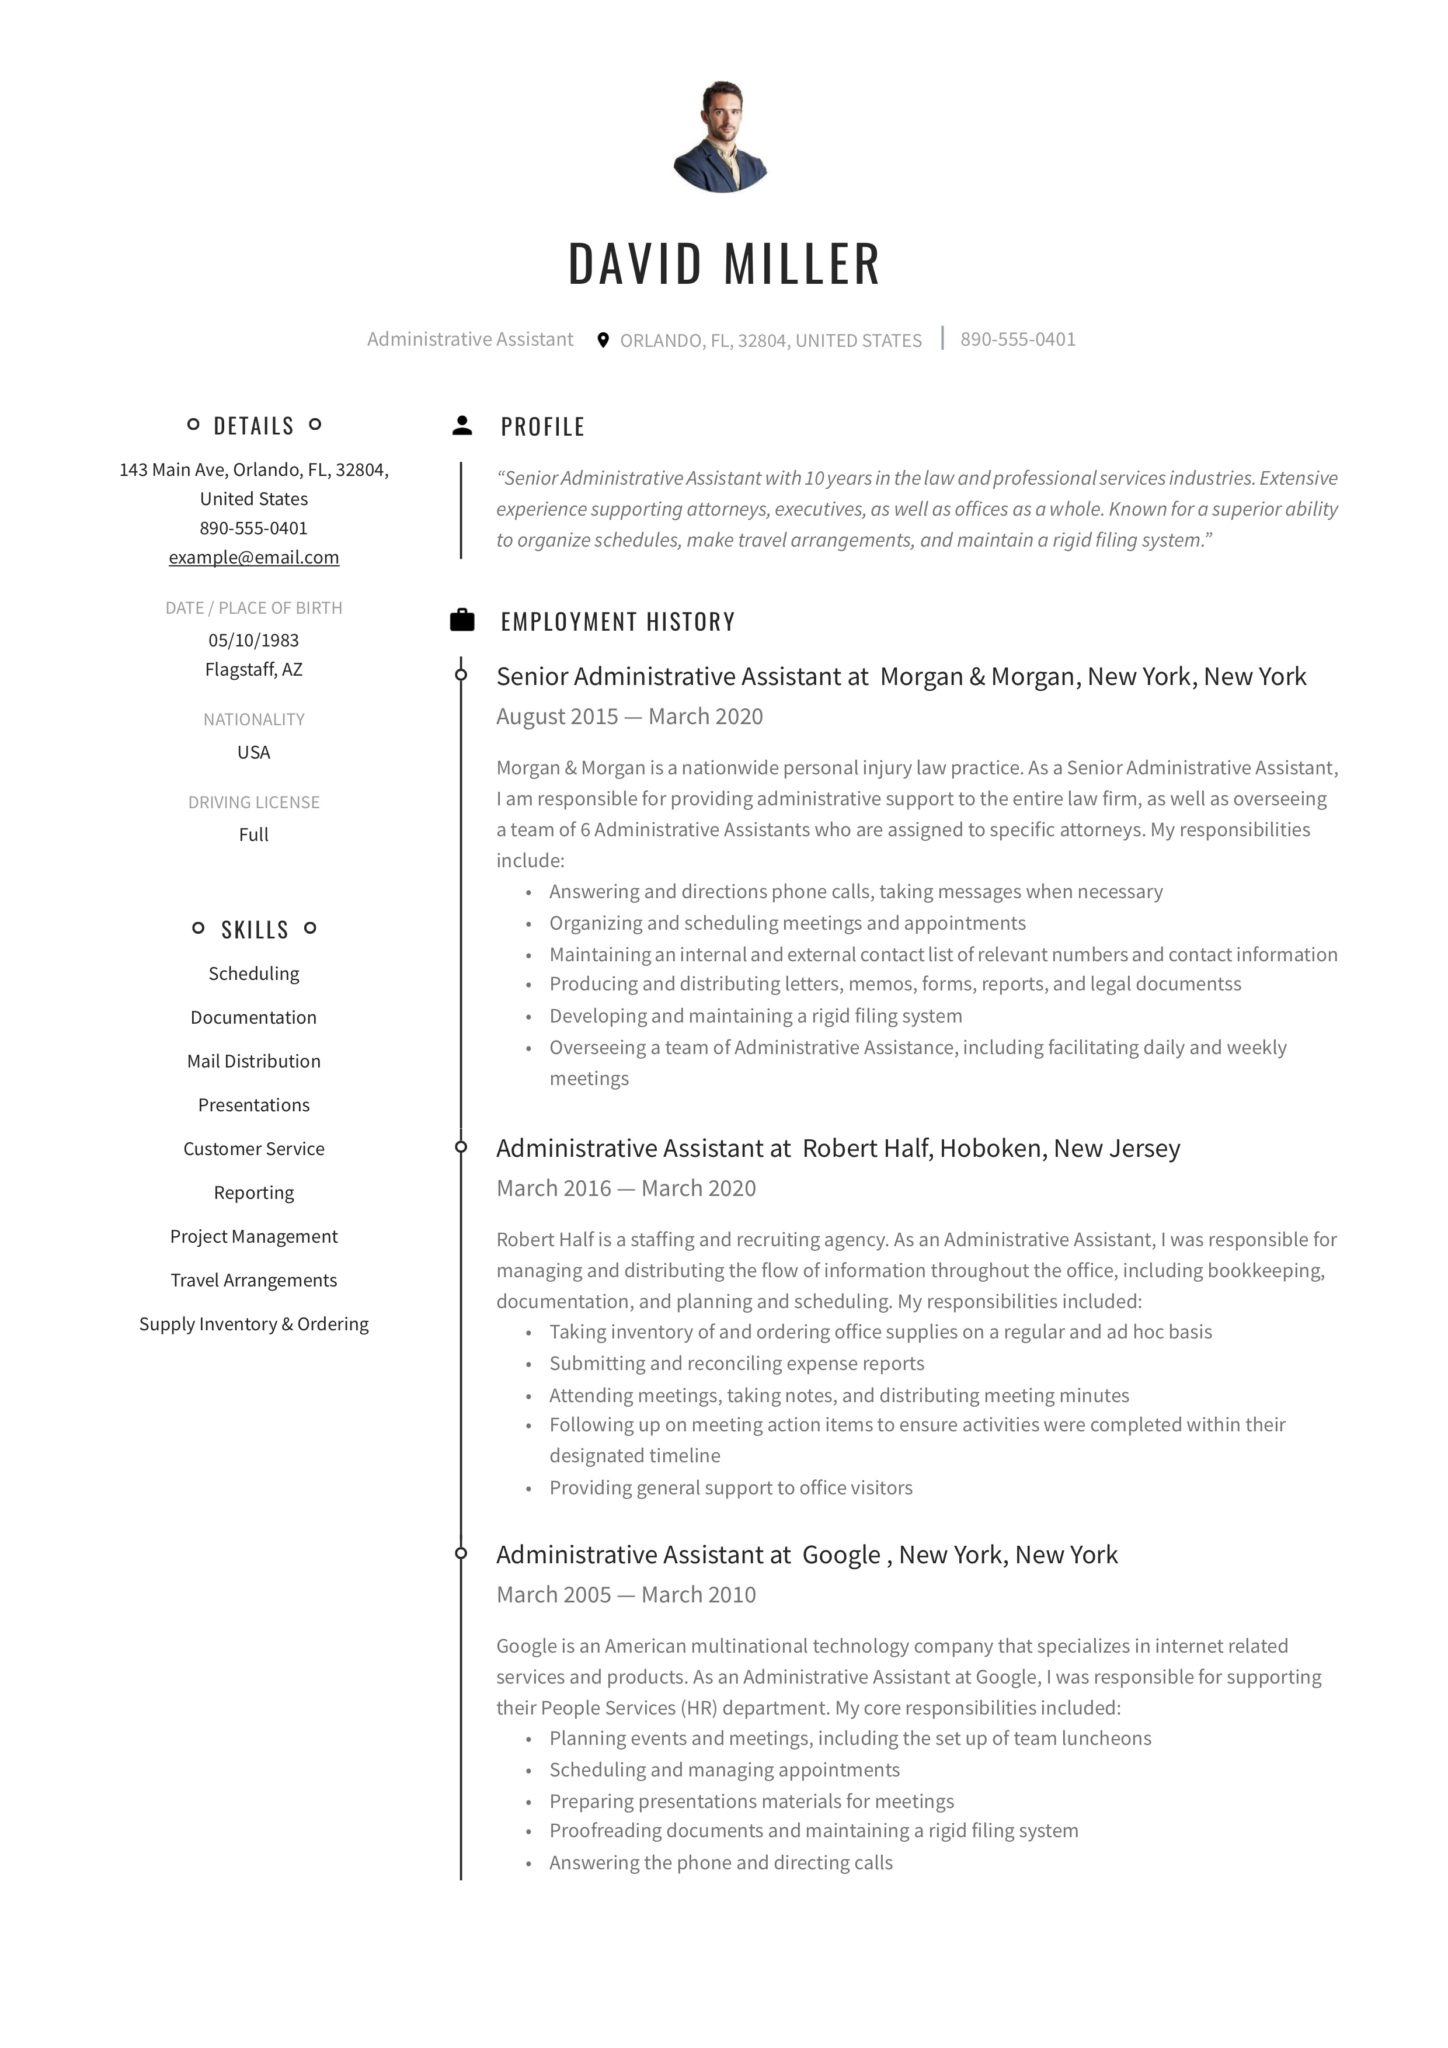 free administrative assistant resumes writing guide pdf resume samples scaled keywords Resume Administrative Assistant Resume Samples 2020